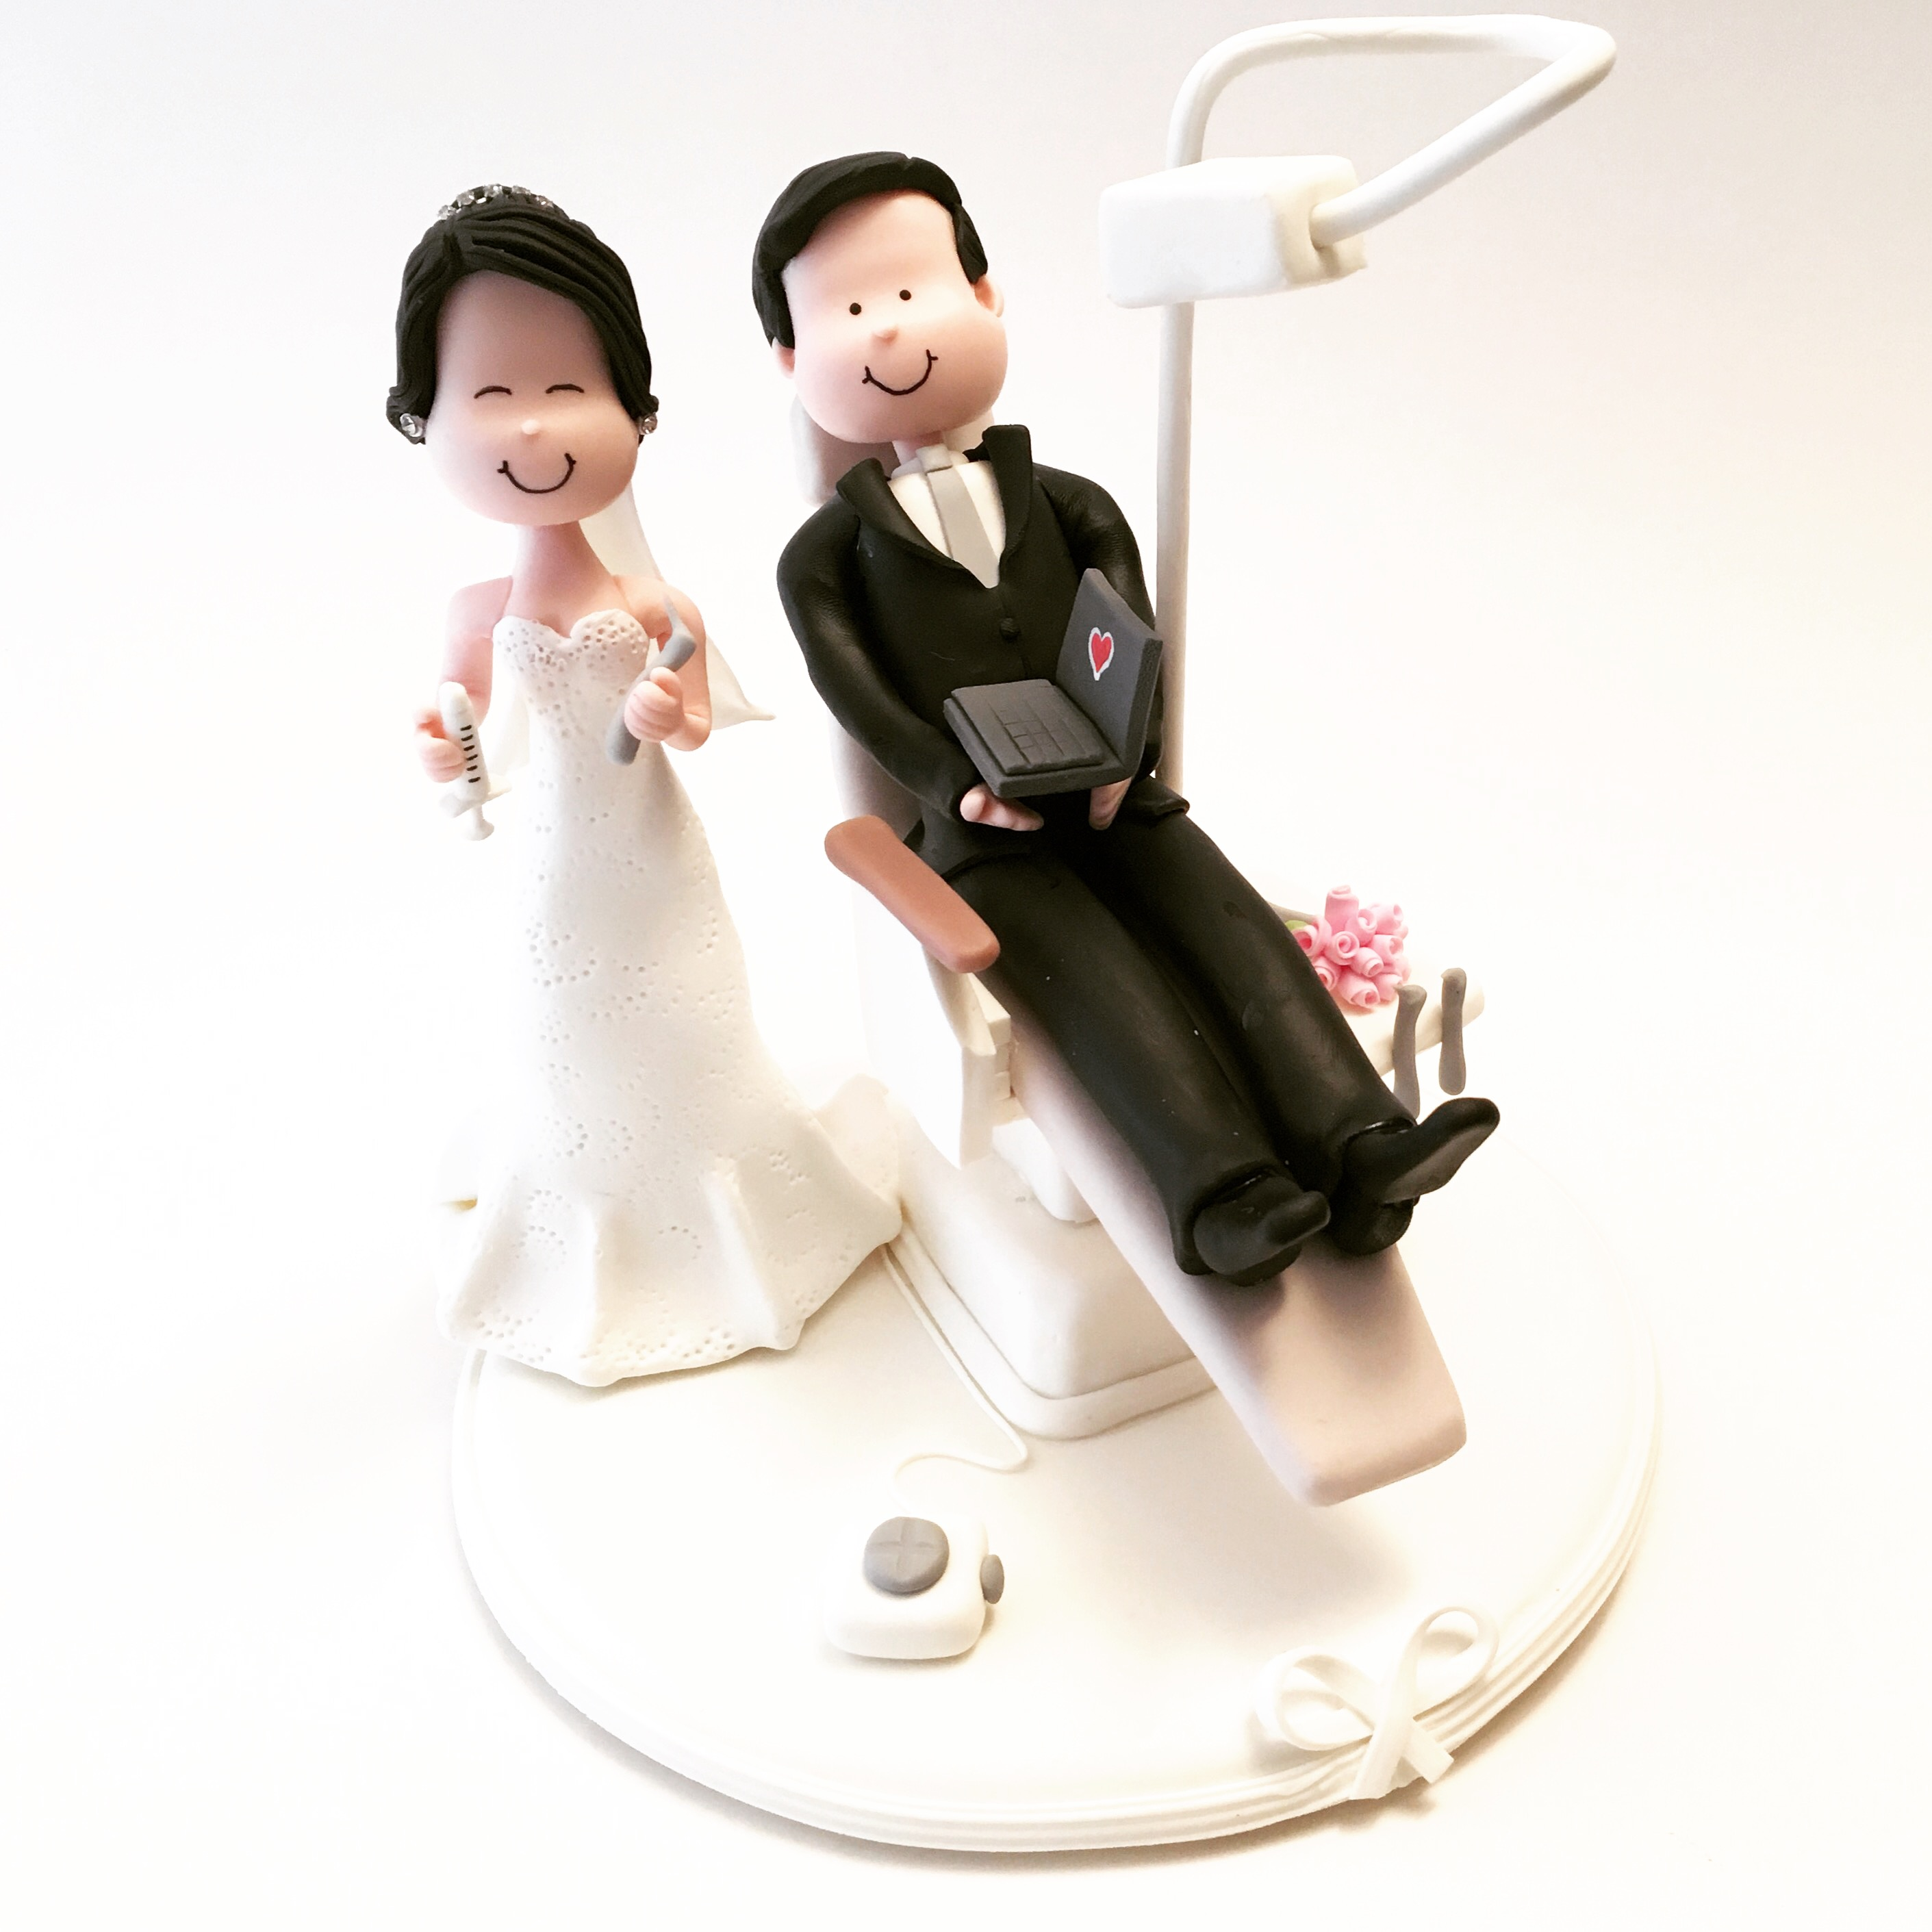 wedding_cake_topper_dentist_3.JPG